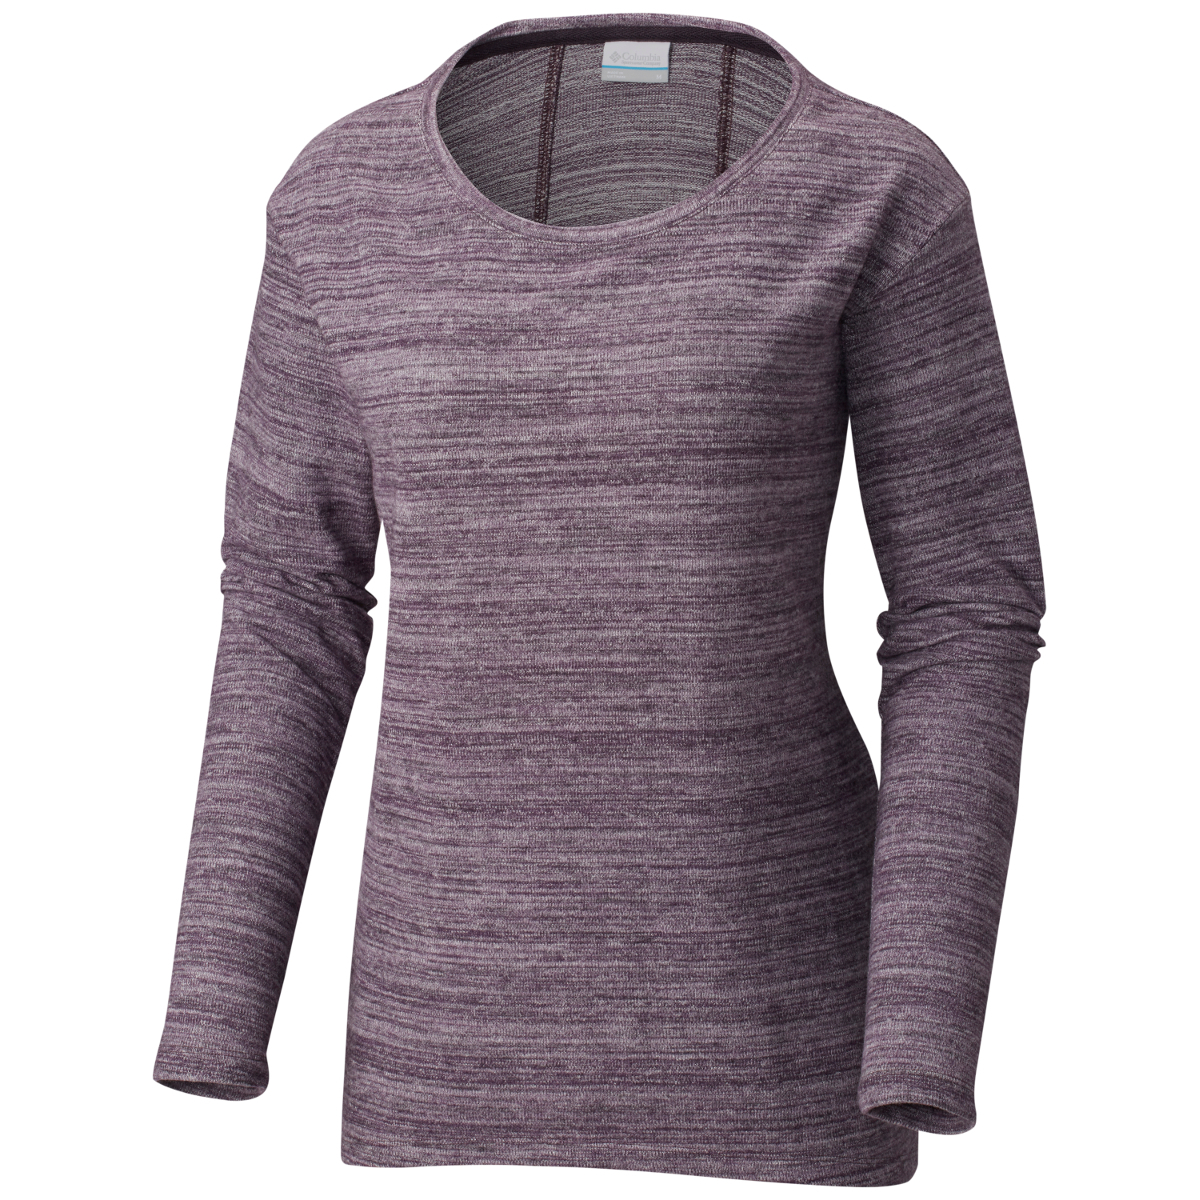 Columbia Women's By The Hearth Sweater - Purple, S